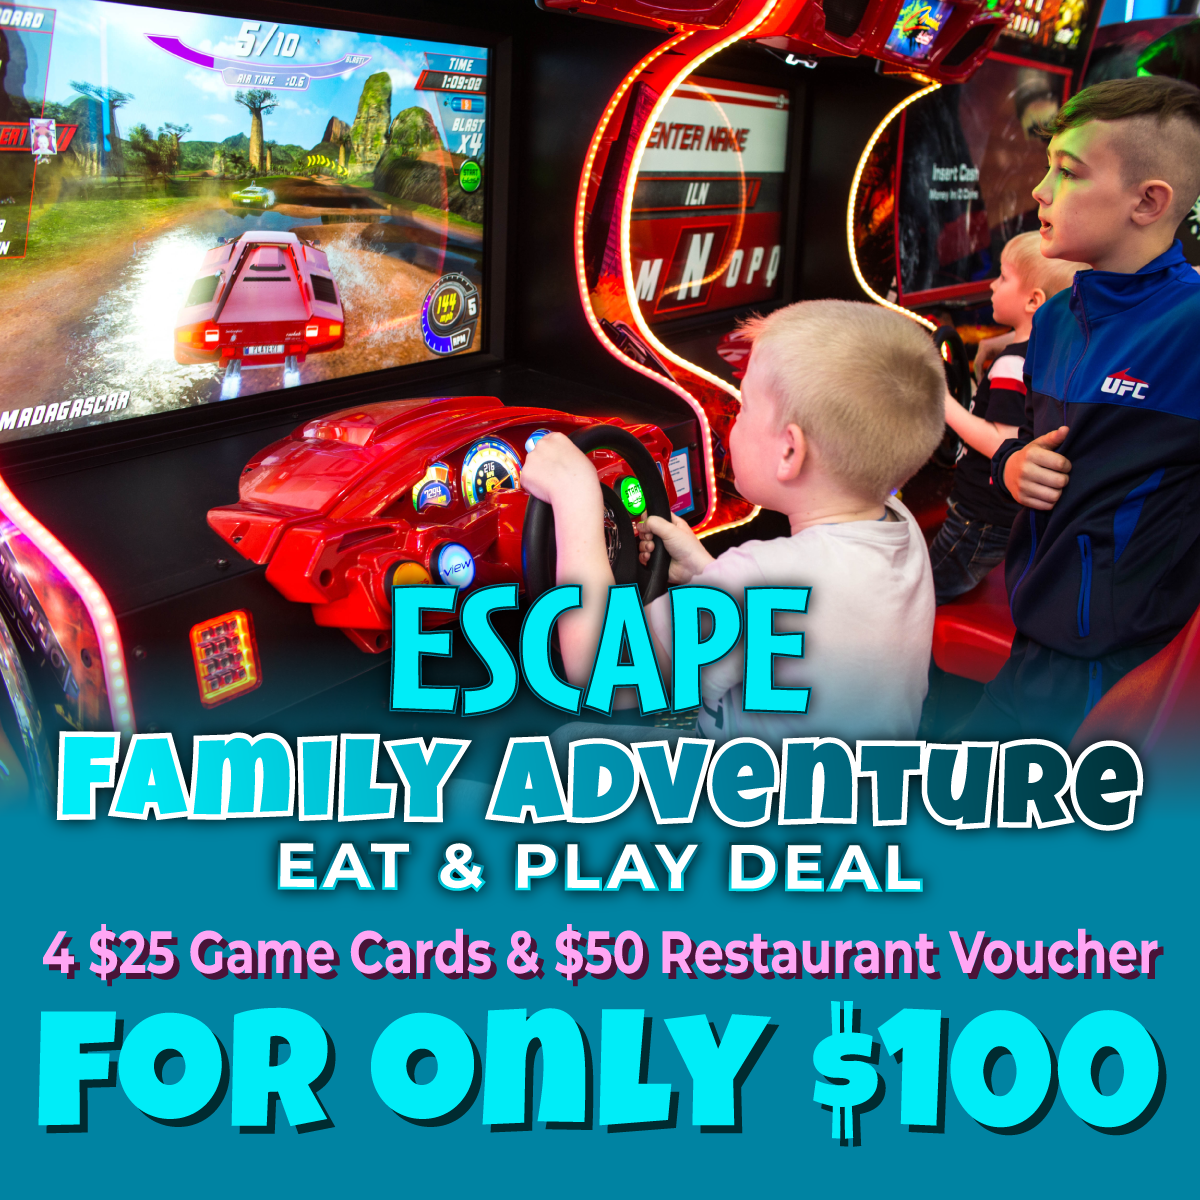 Family Adventure Eat & Play Deal Special